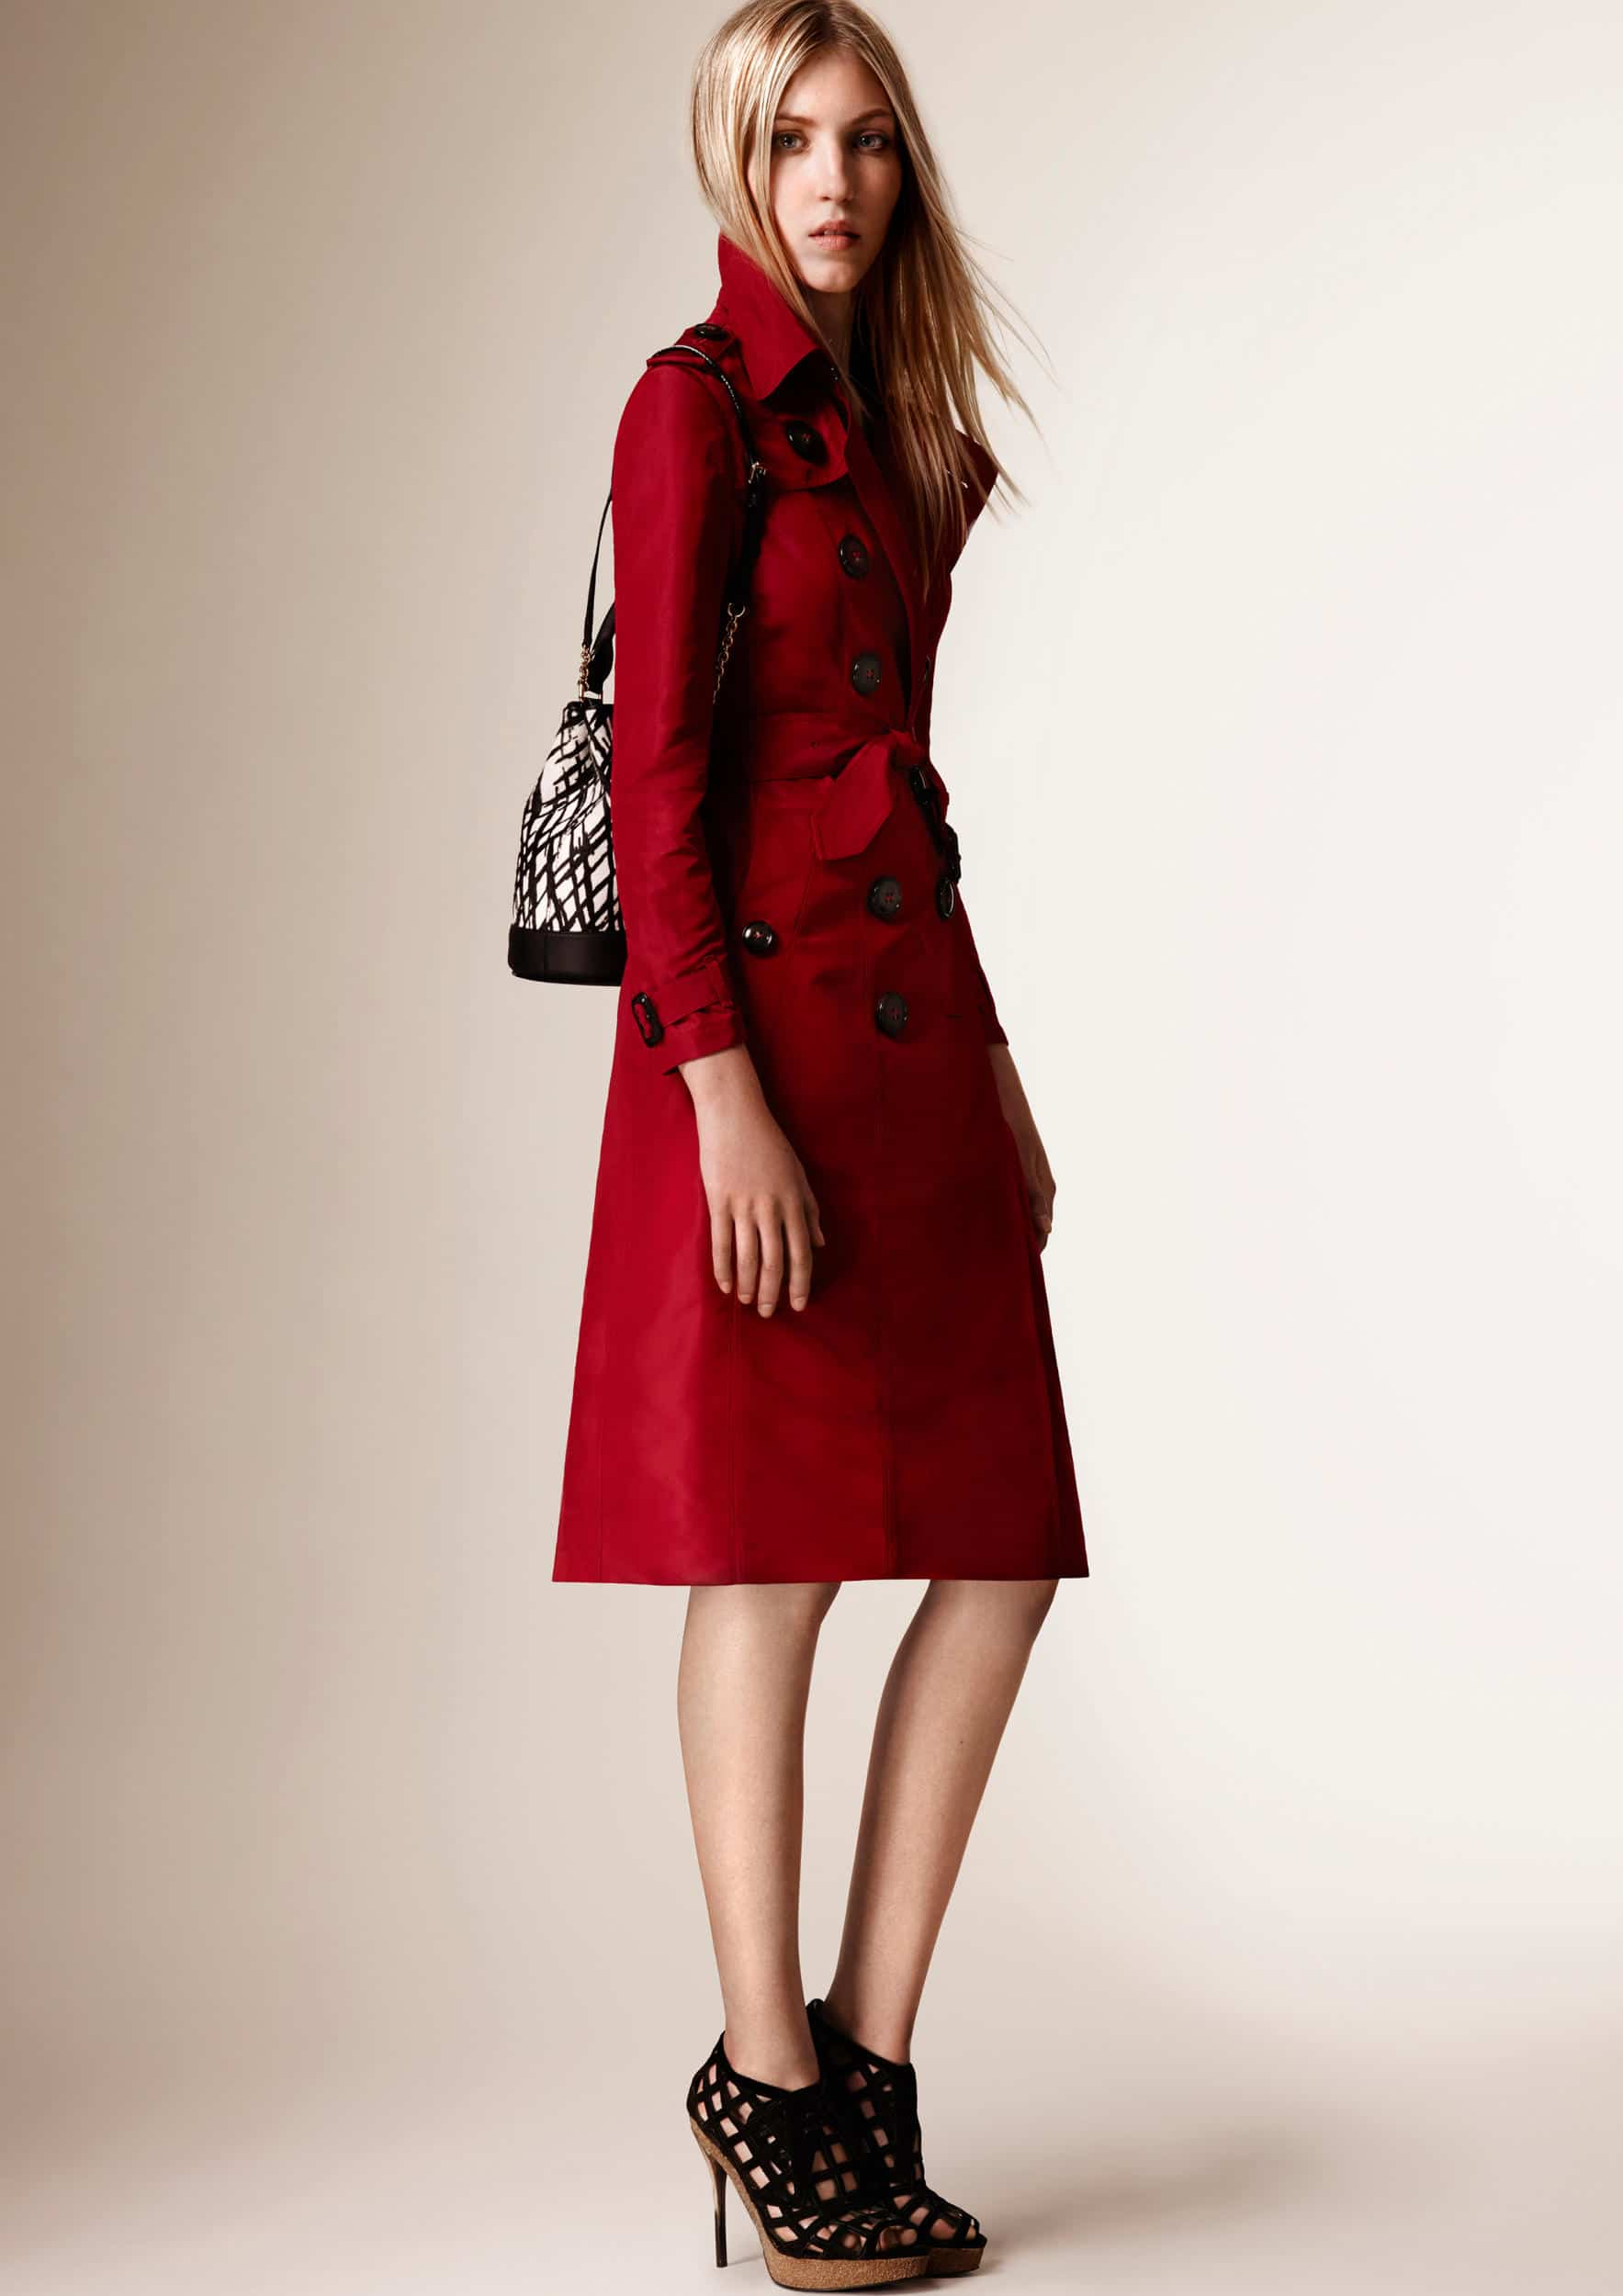 burberry-resort-collection-2016-2